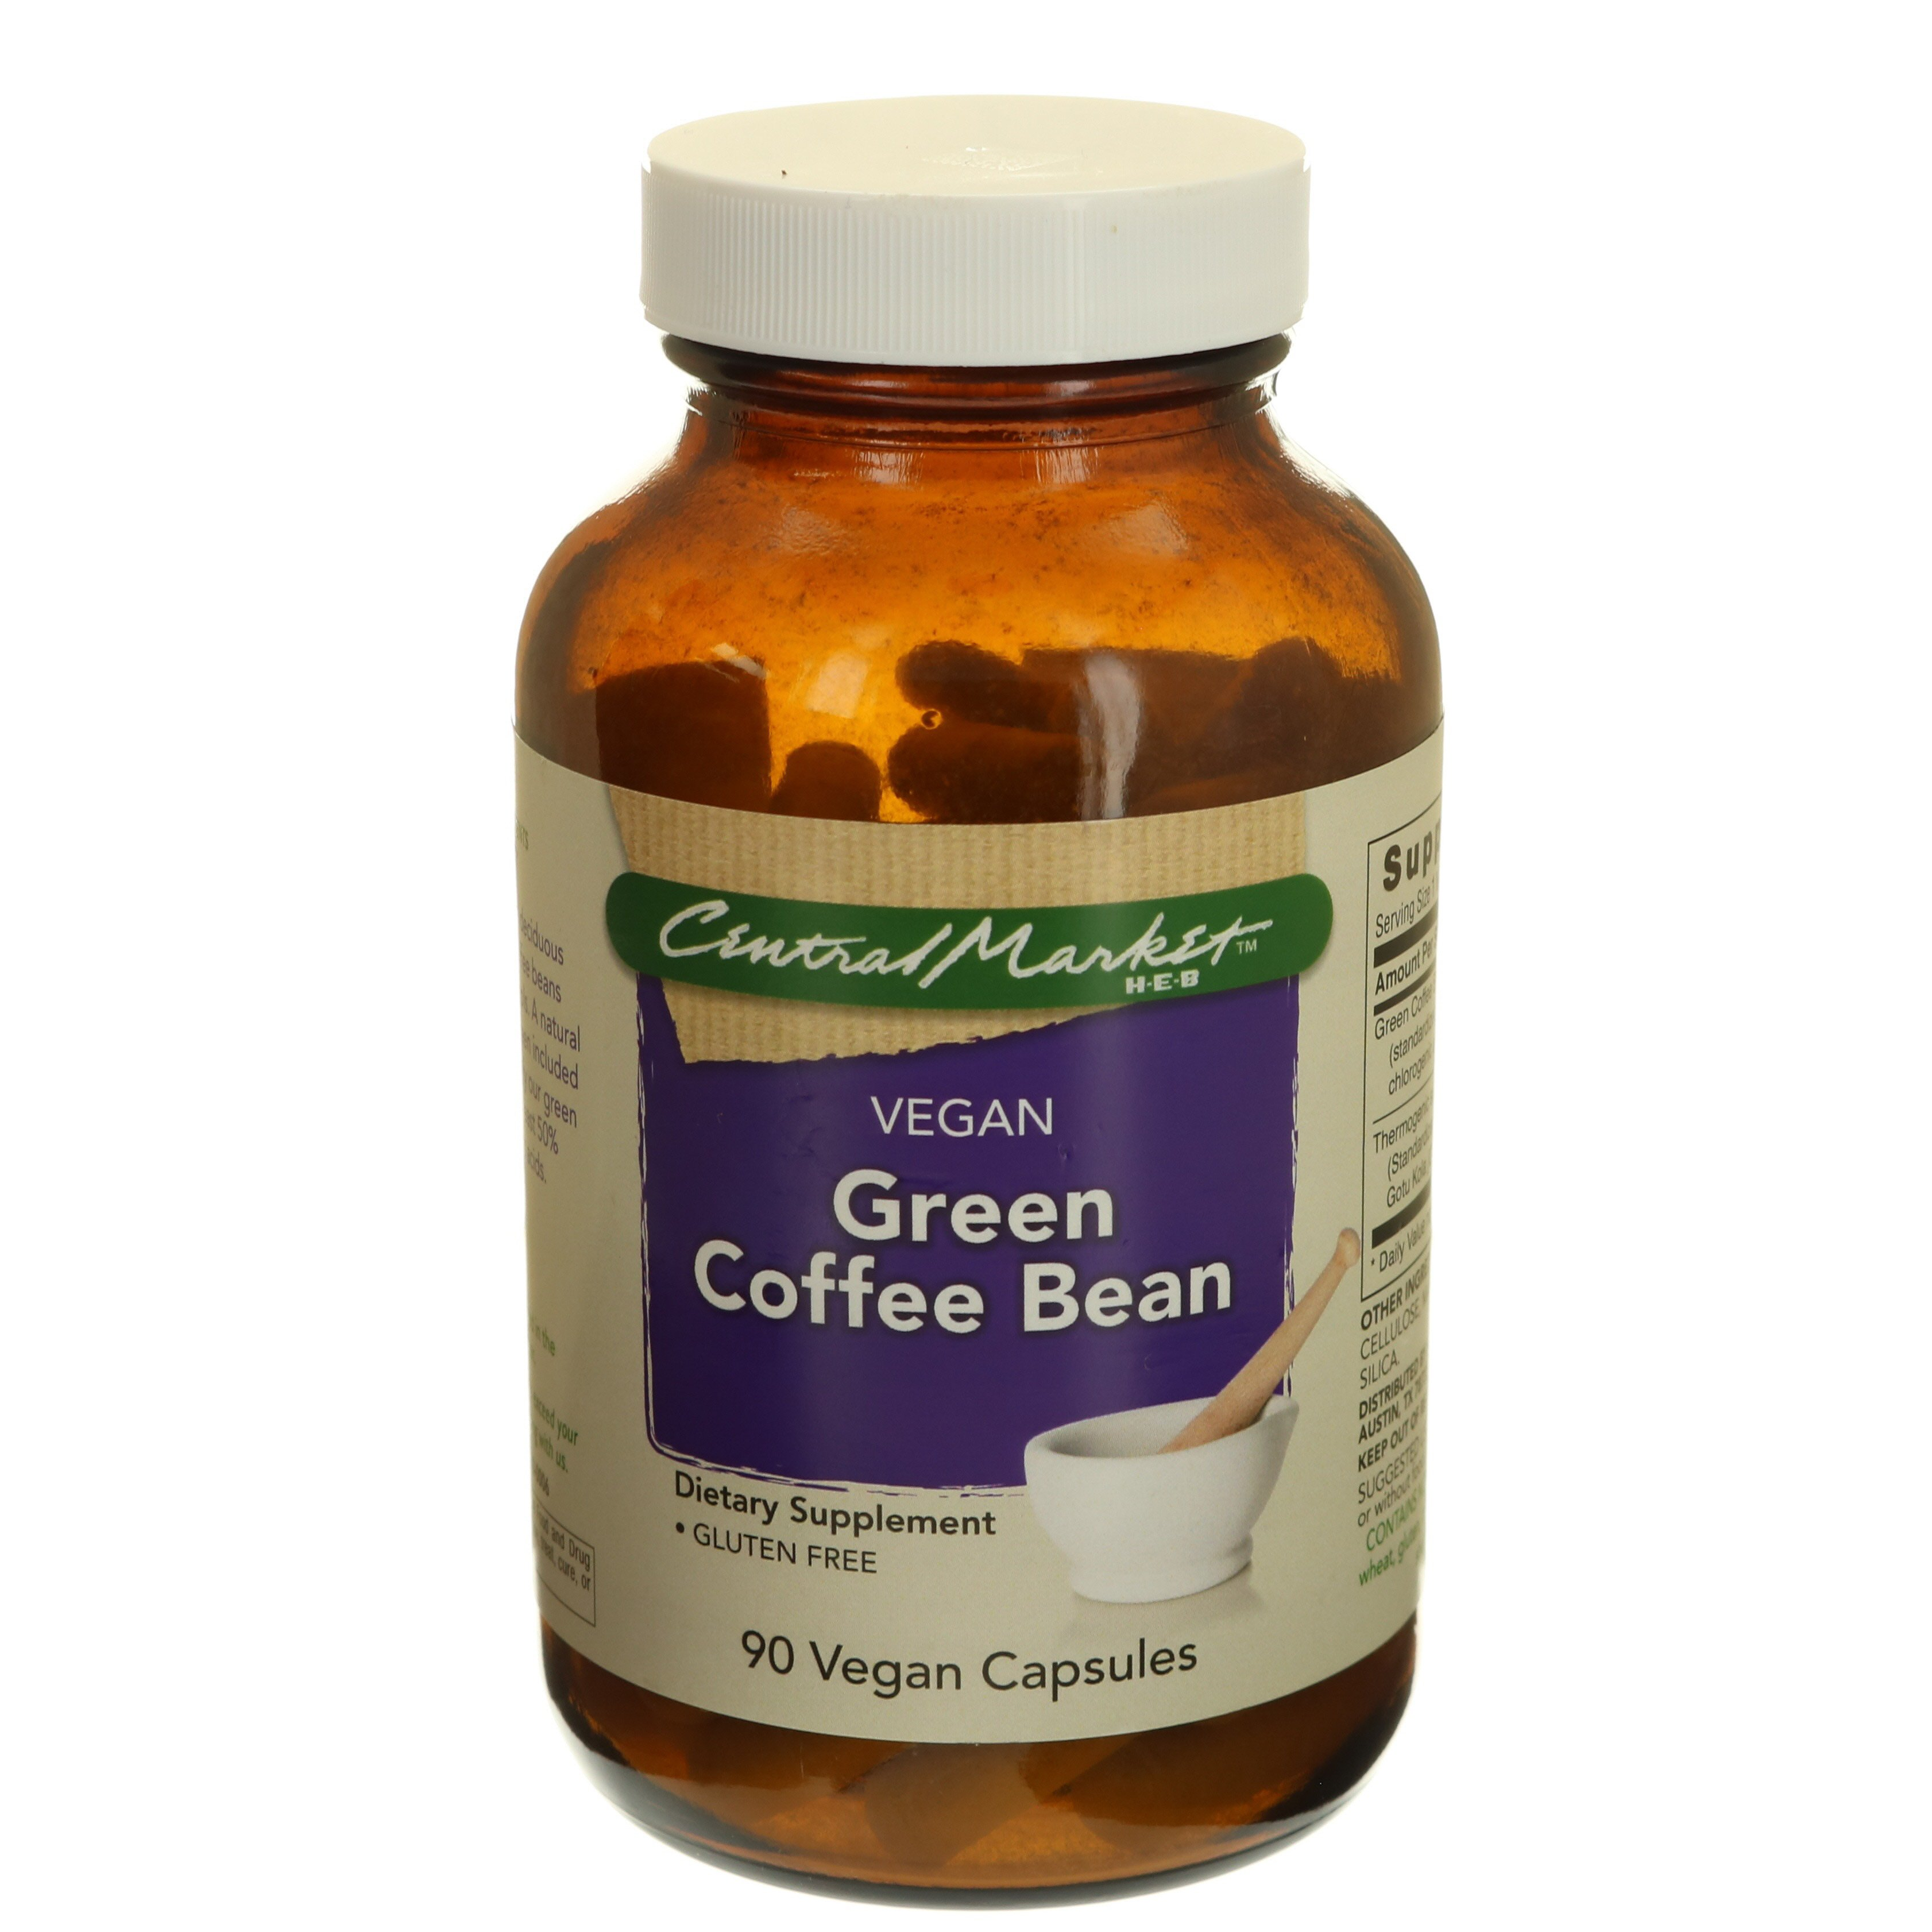 Central Market Green Coffee Bean Vegan Capsules Shop Diet